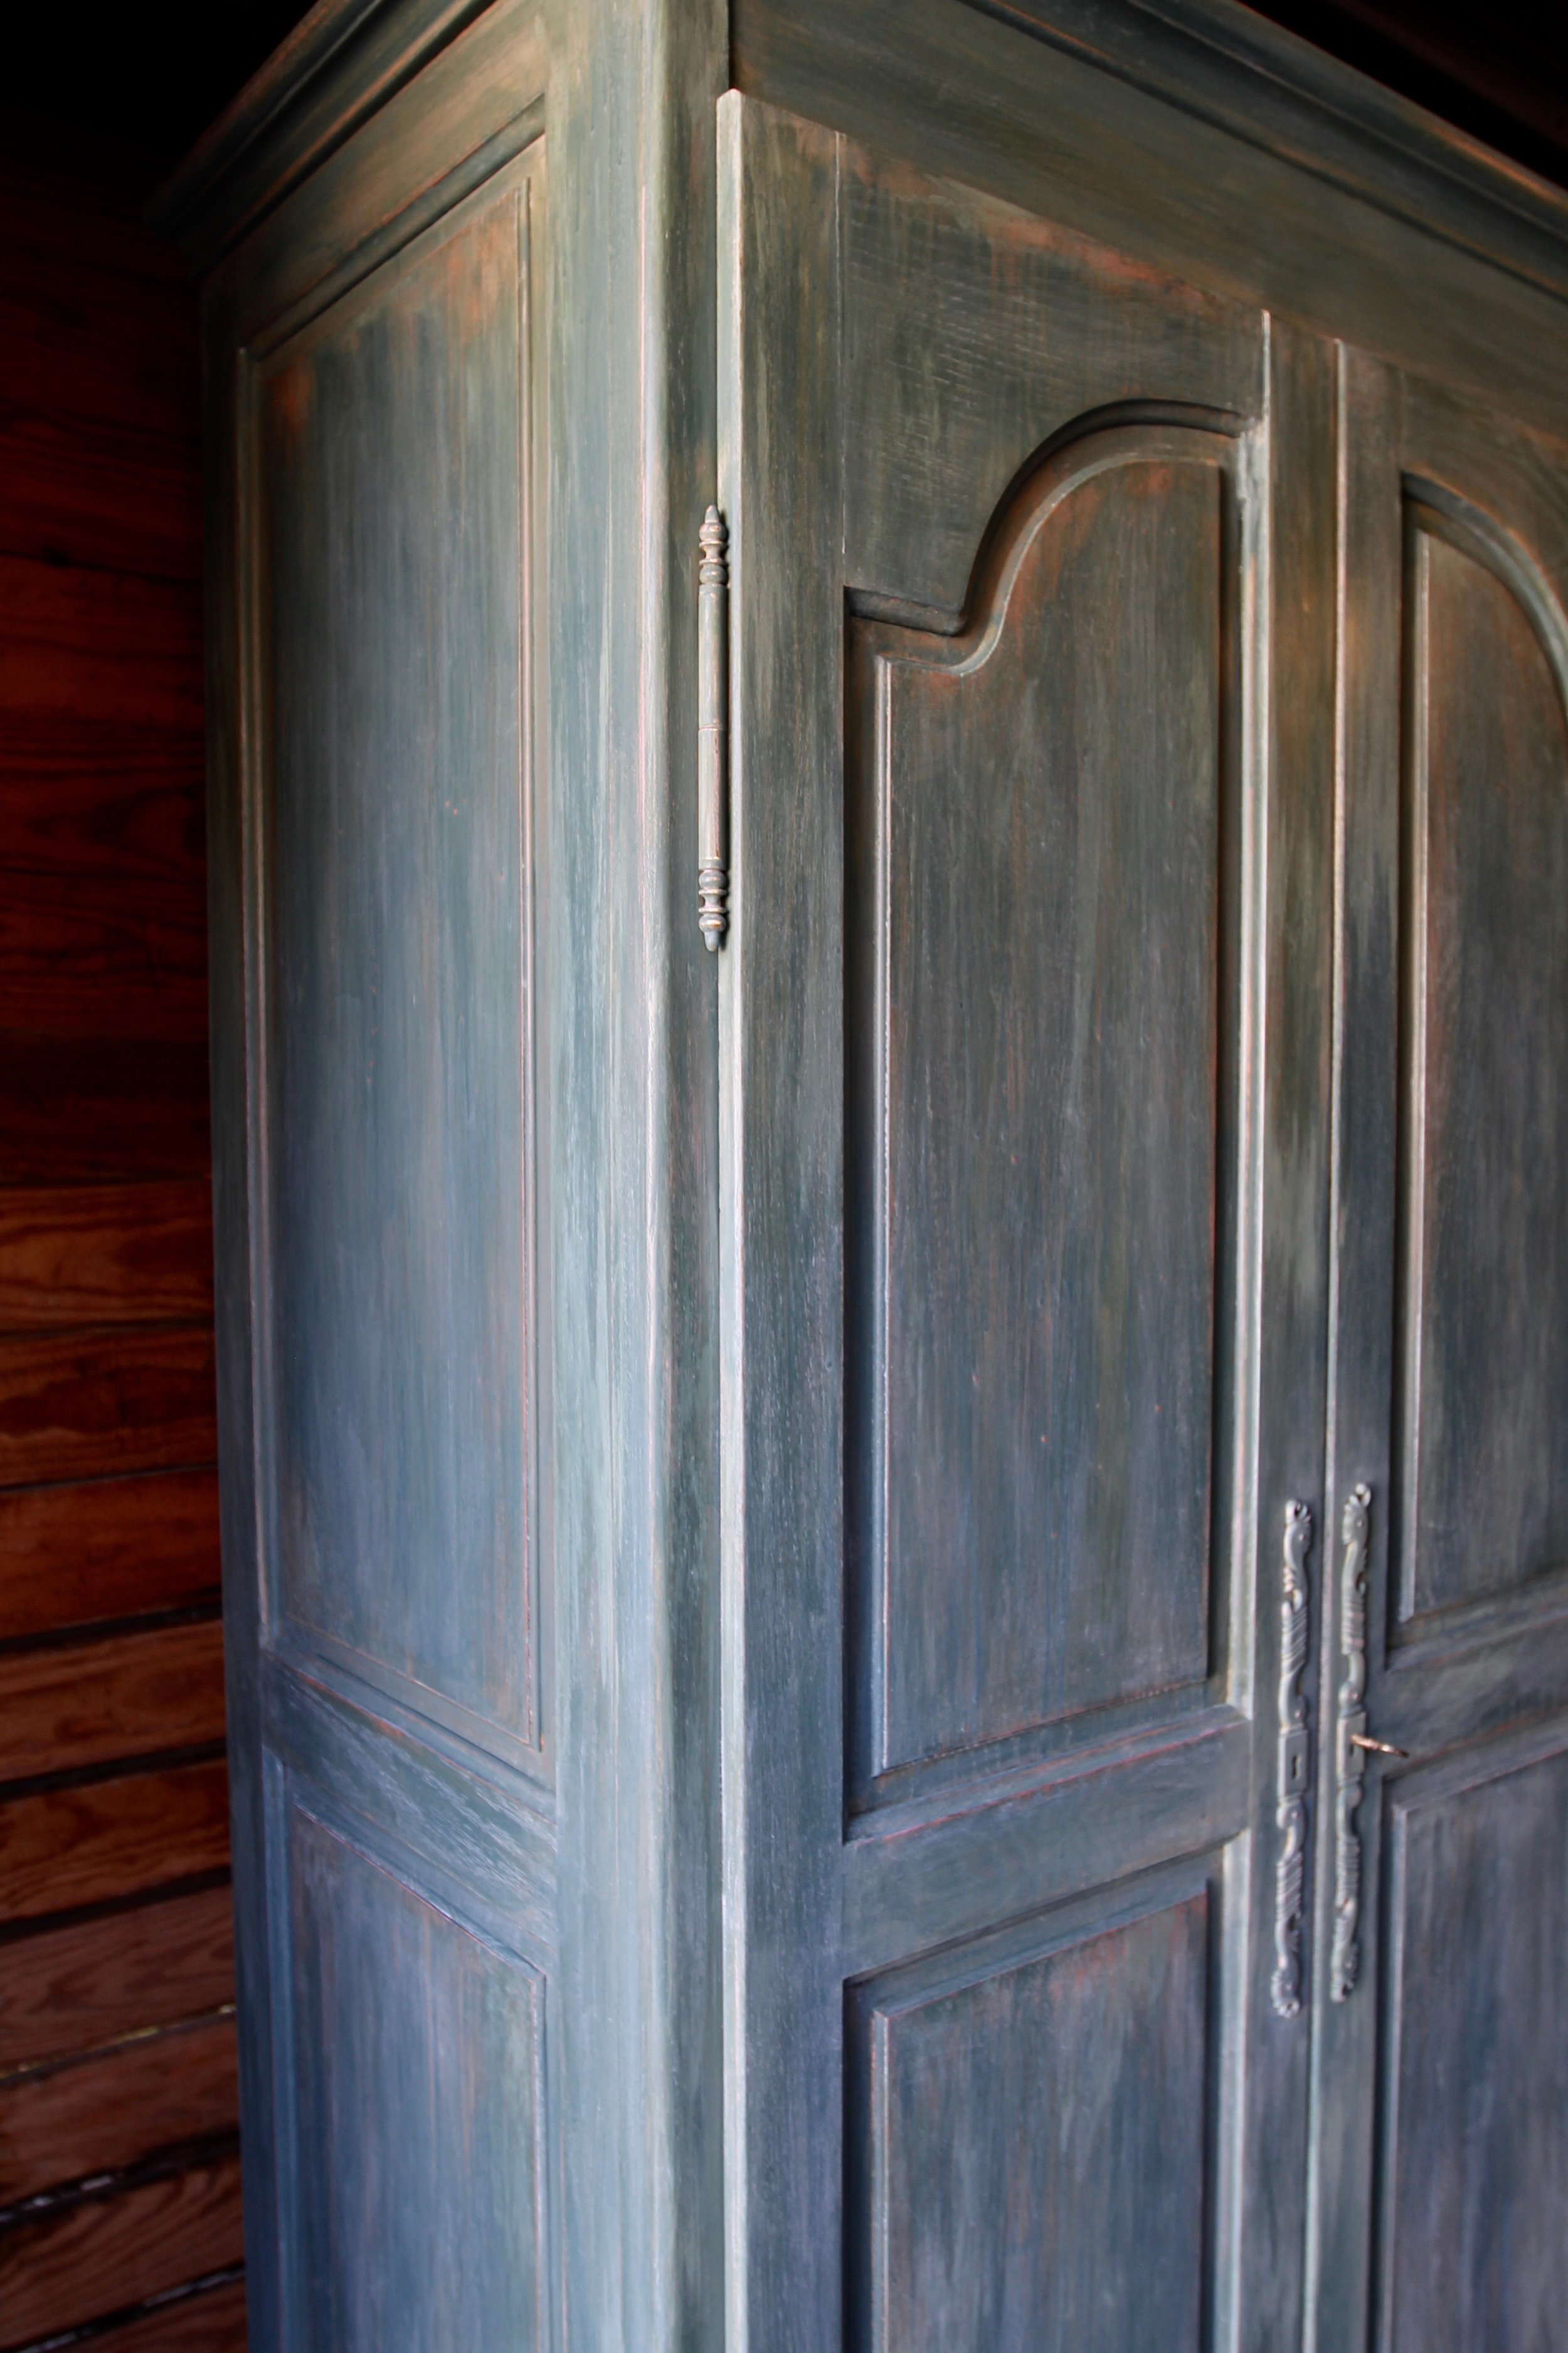 jo-torrijos-a-simpler-design-painted-furniture-dallas-texas-layered-paint-technique-green-armoire-4.jpg